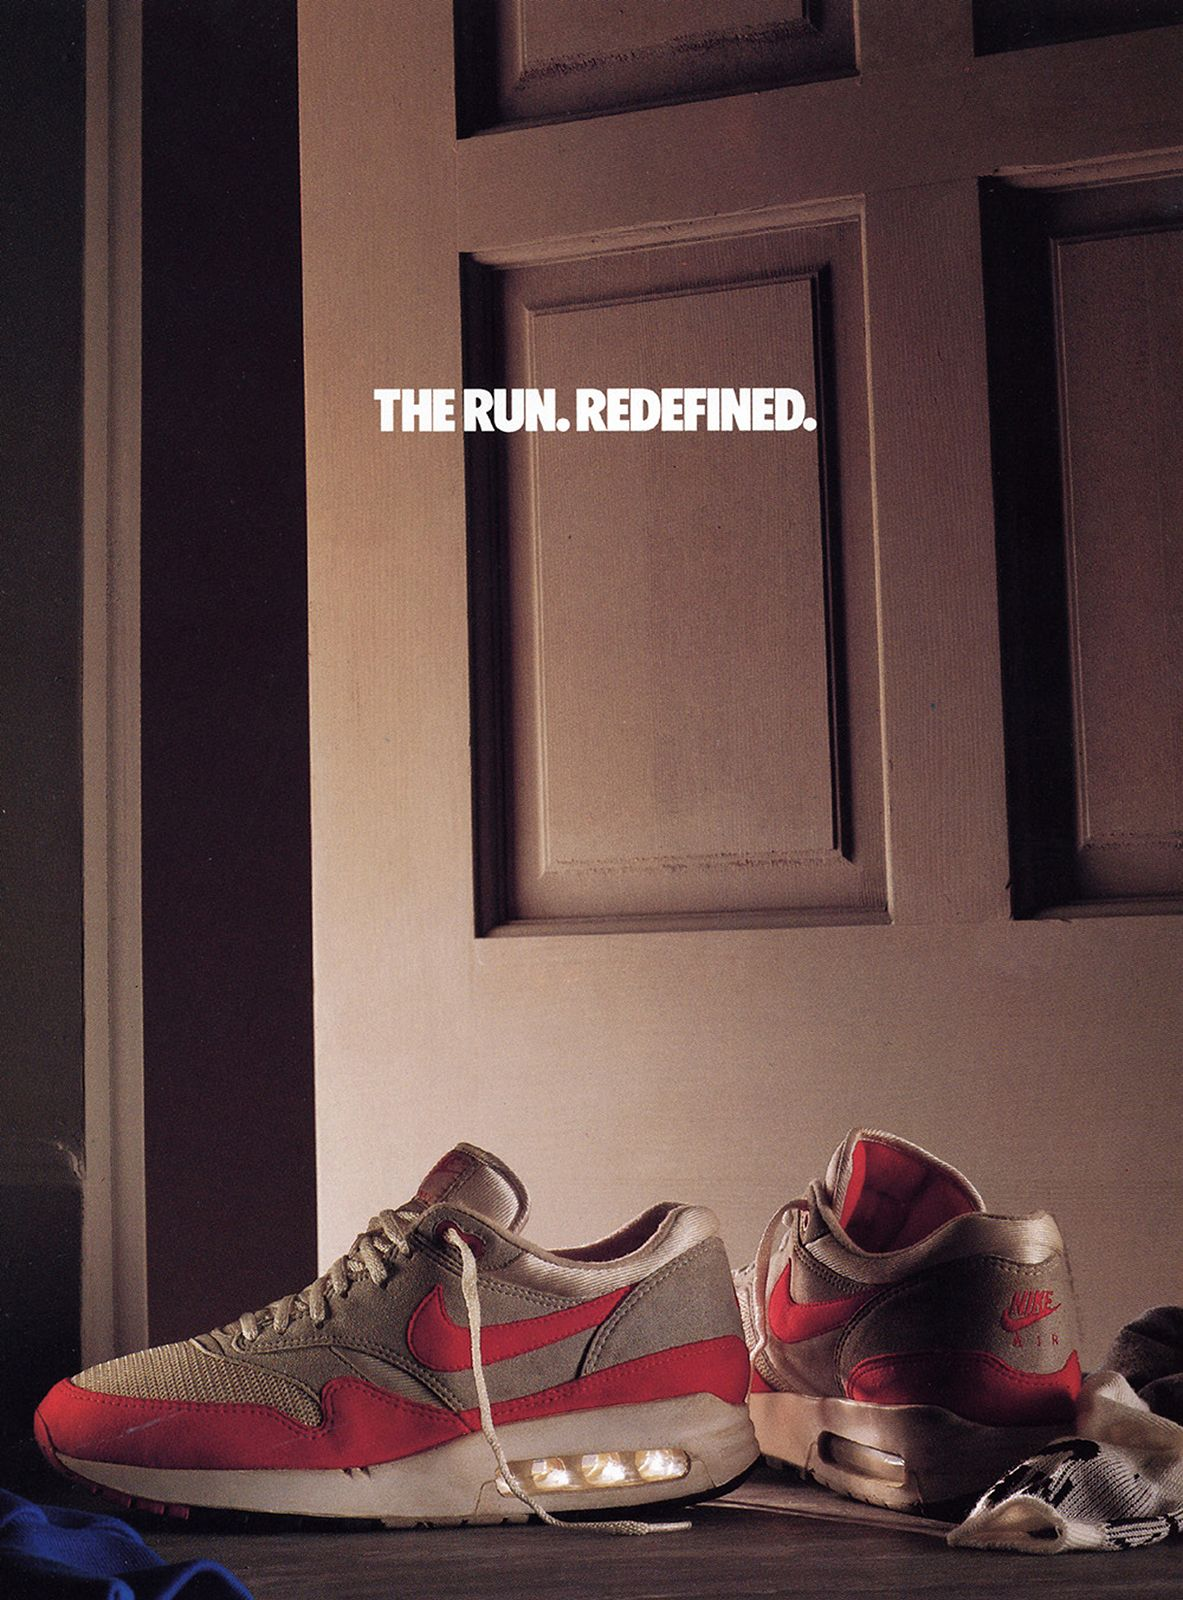 reputable site e0b36 4f17c OG AIR MAX 1 POSTER